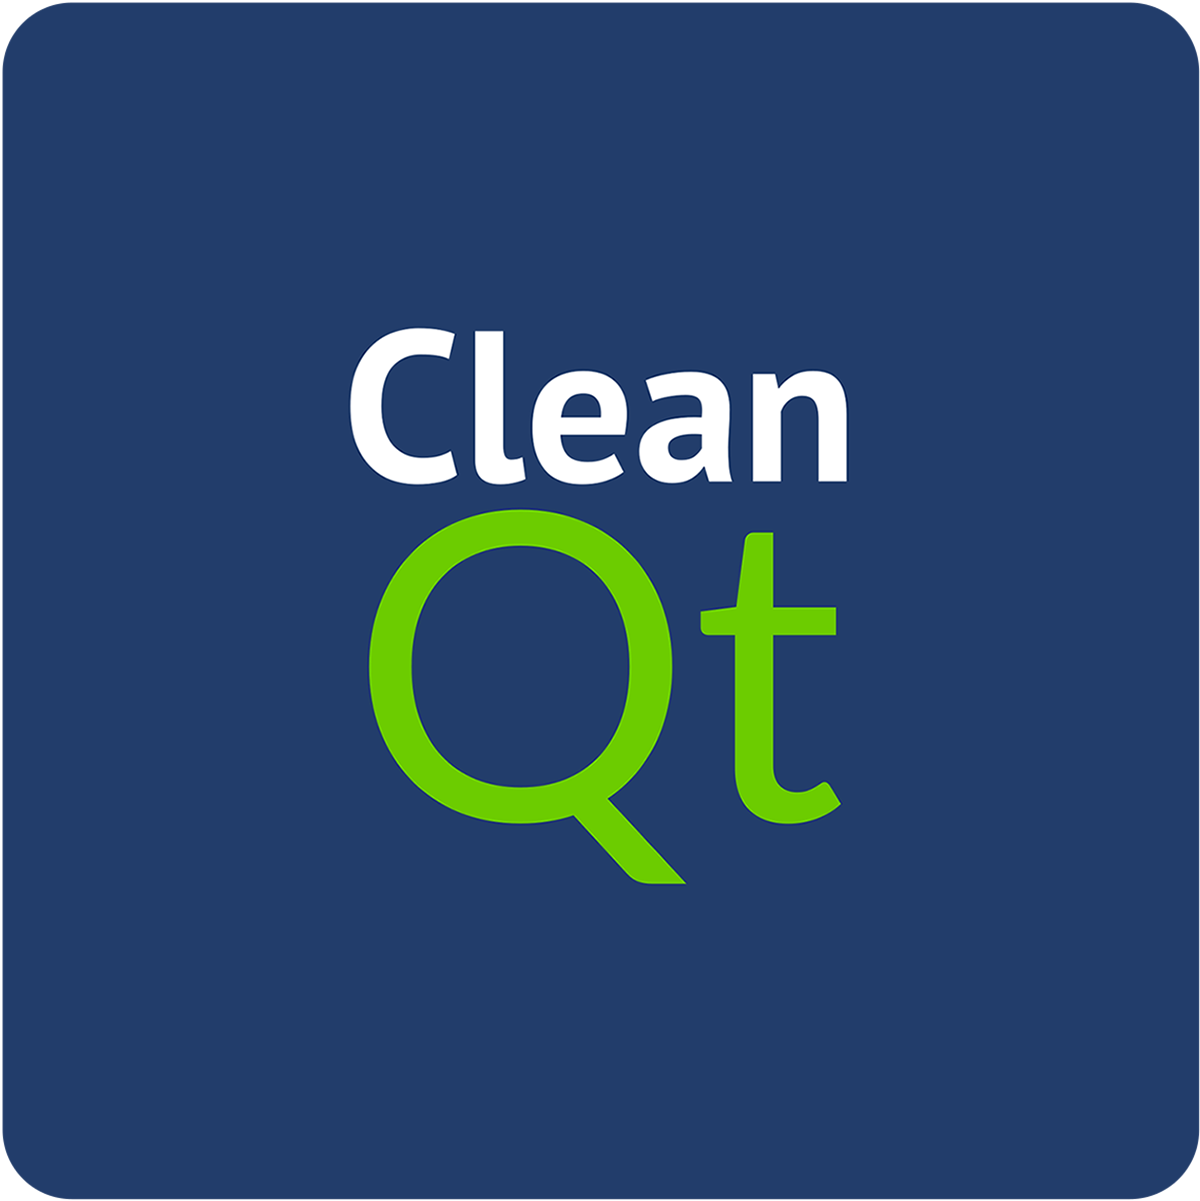 Crash course in Qt for C++ developers, Part 7 / Clean Qt